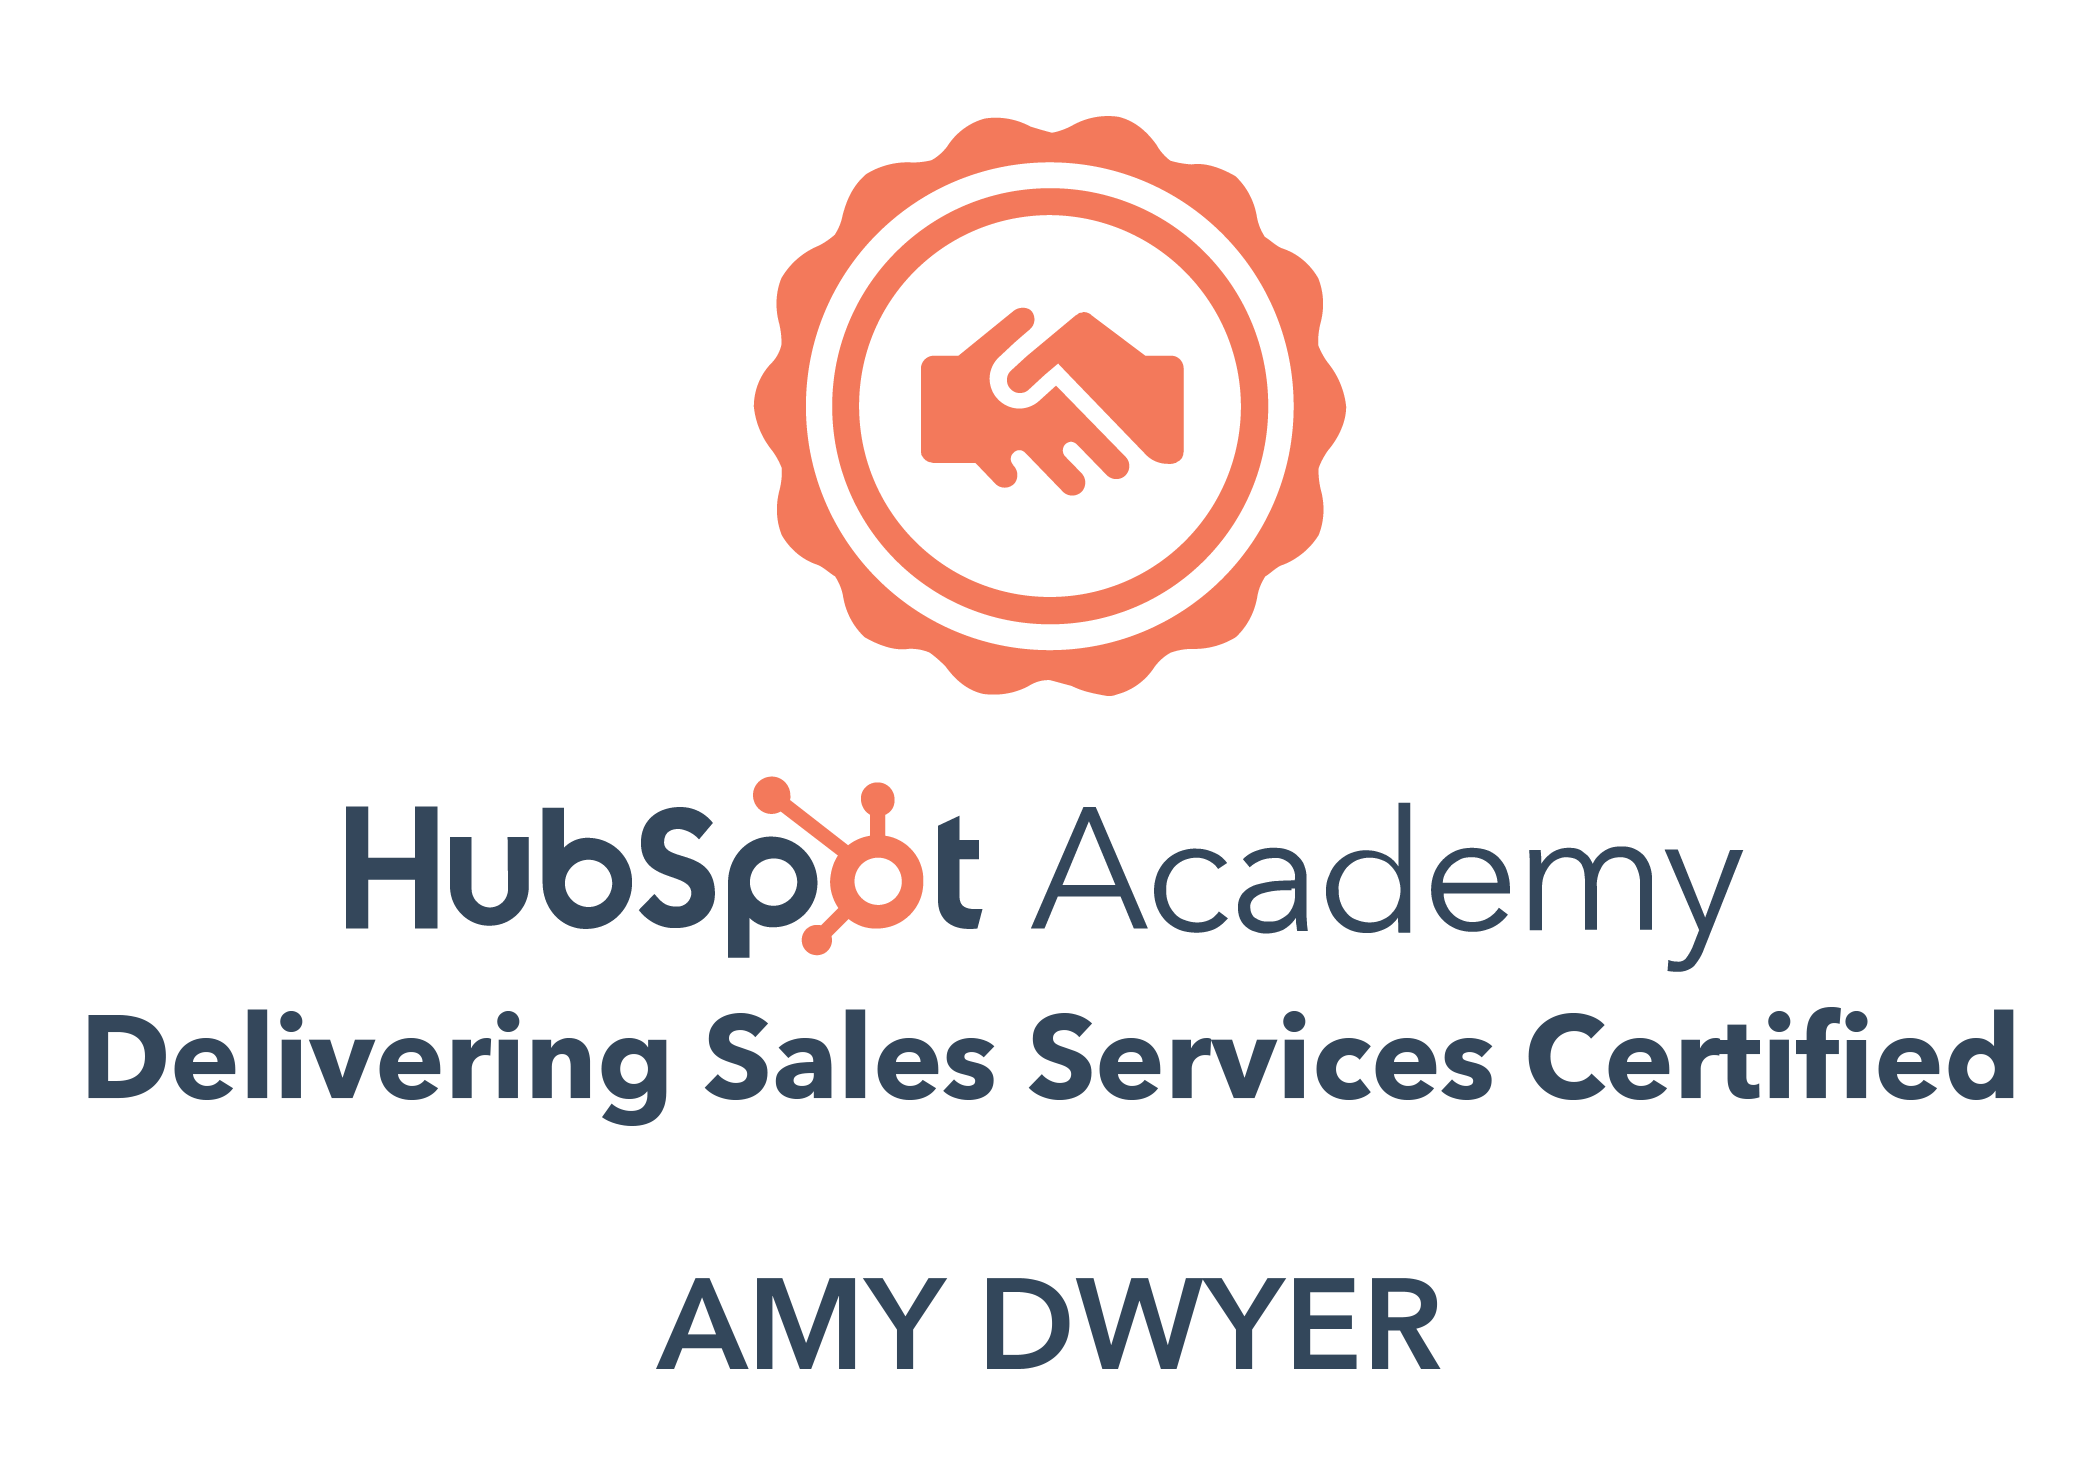 HubSpot delivering sales services certified Amy Dwyer